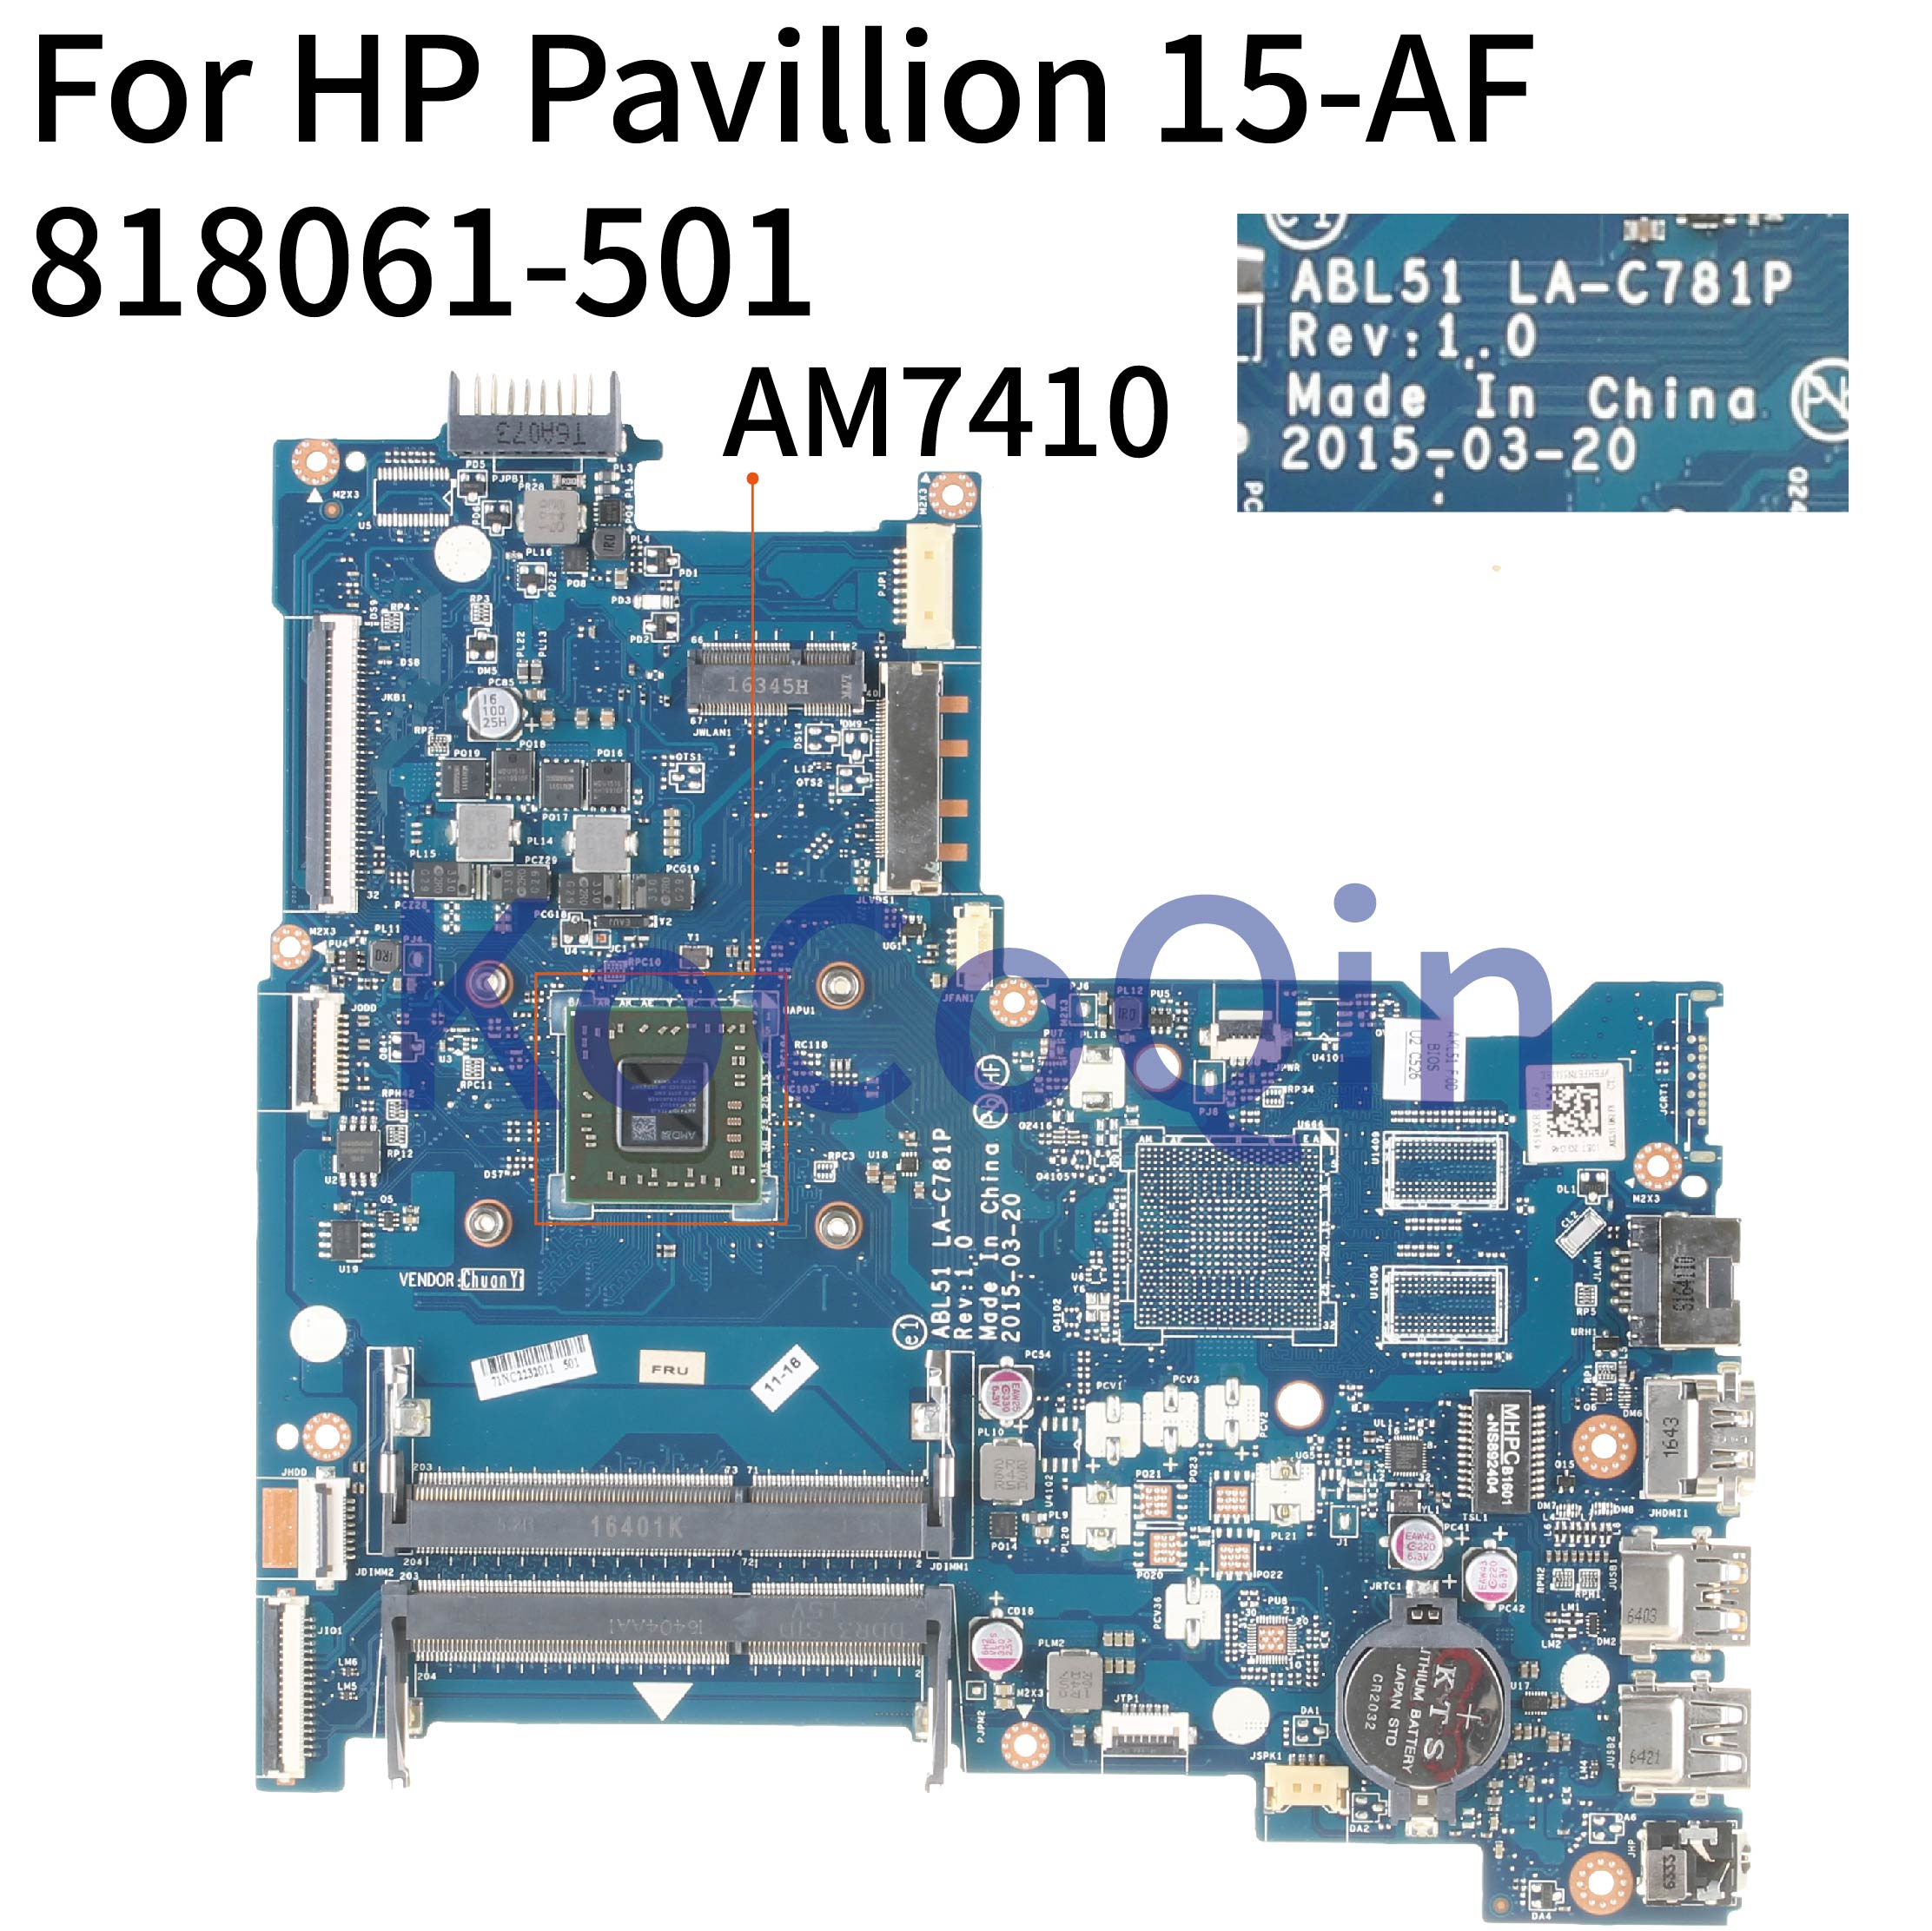 KoCoQin Laptop Motherboard For HP Pavillion 15-AF A8-7410 AM7410 Mainboard ABL51 LA-C781P 813969-501 813969-601 818061-601